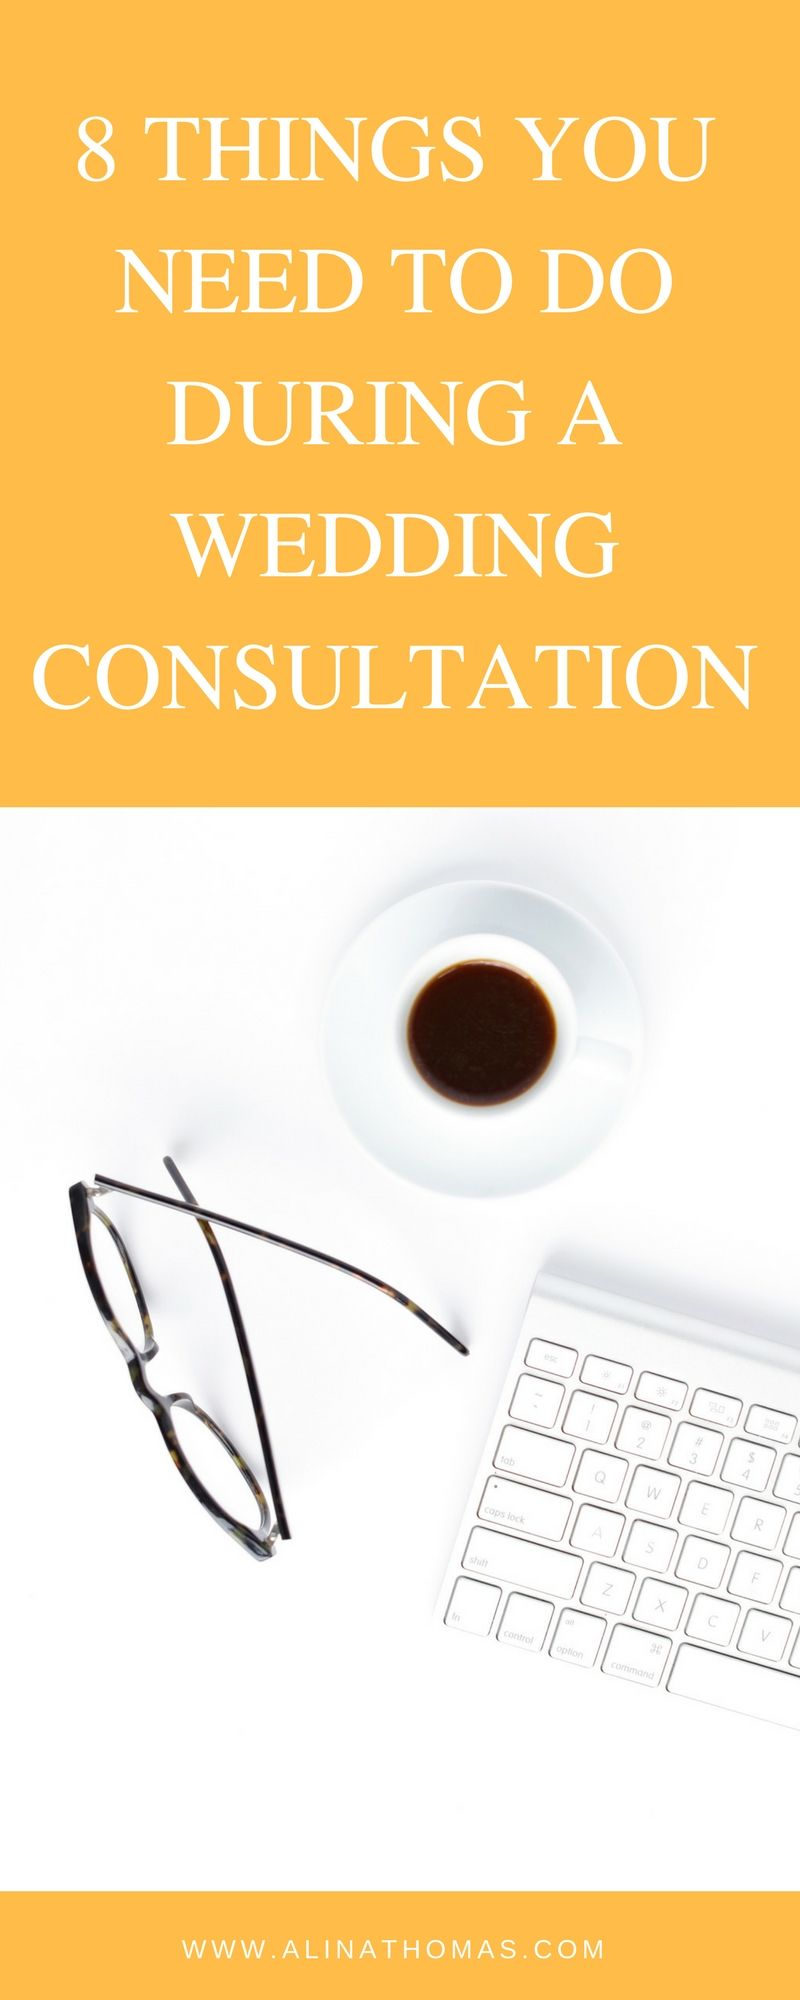 How To Conduct A Wedding Photography Consultation Wedding Photography List Wedding Photography Tips Wedding Planning Tips